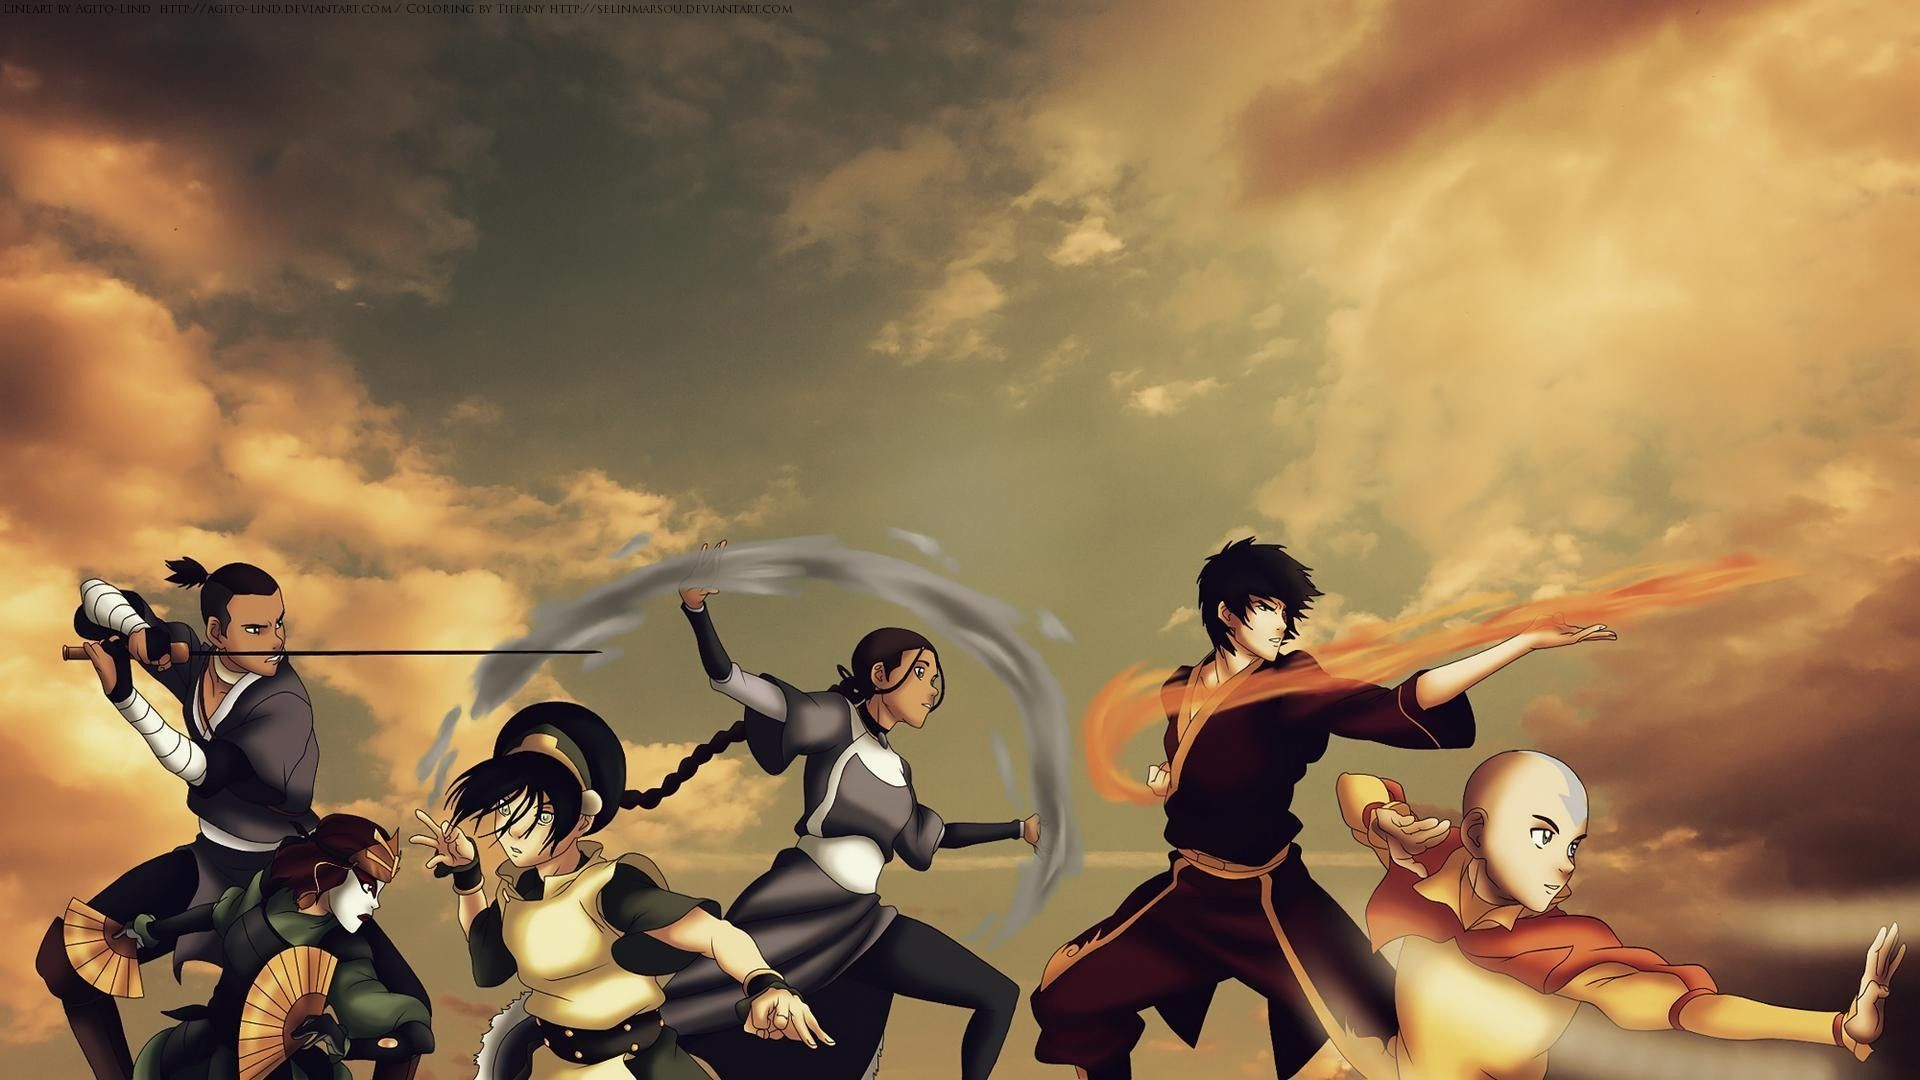 1920x1080 Avatar the Last Airbender Wallpapers (71+ images)